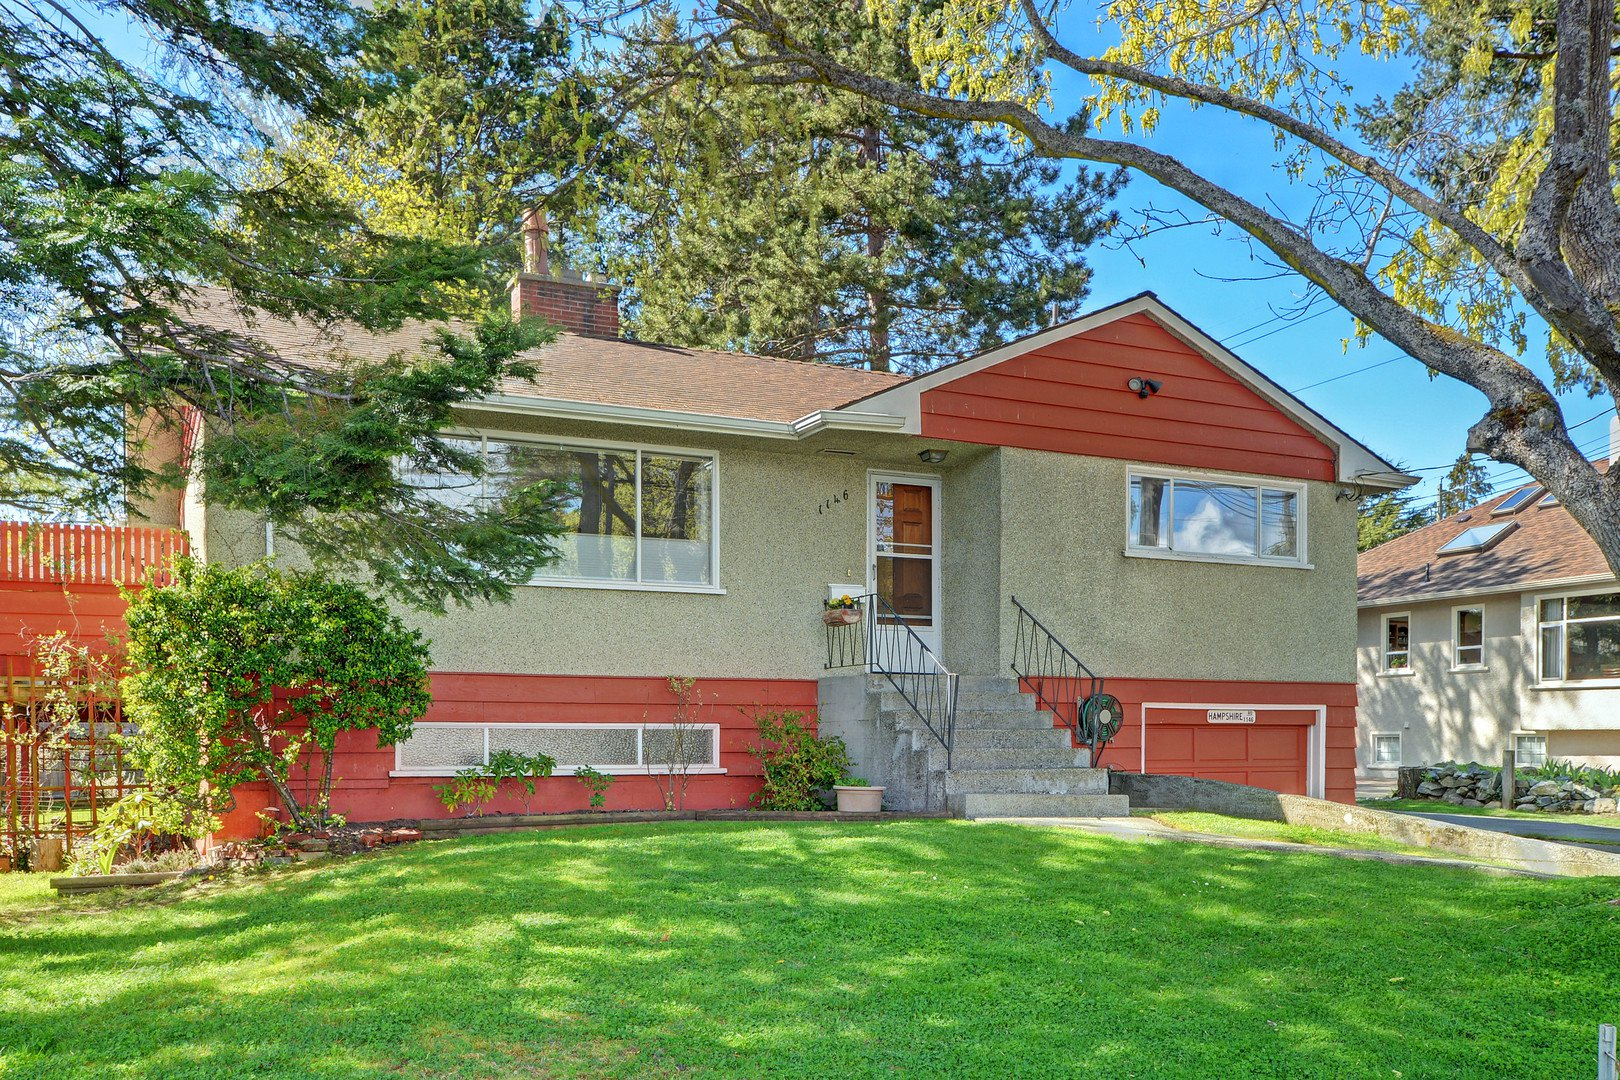 Main Photo: 1146 Hampshire Road in VICTORIA: OB South Oak Bay Single Family Detached for sale (Oak Bay)  : MLS®# 389899